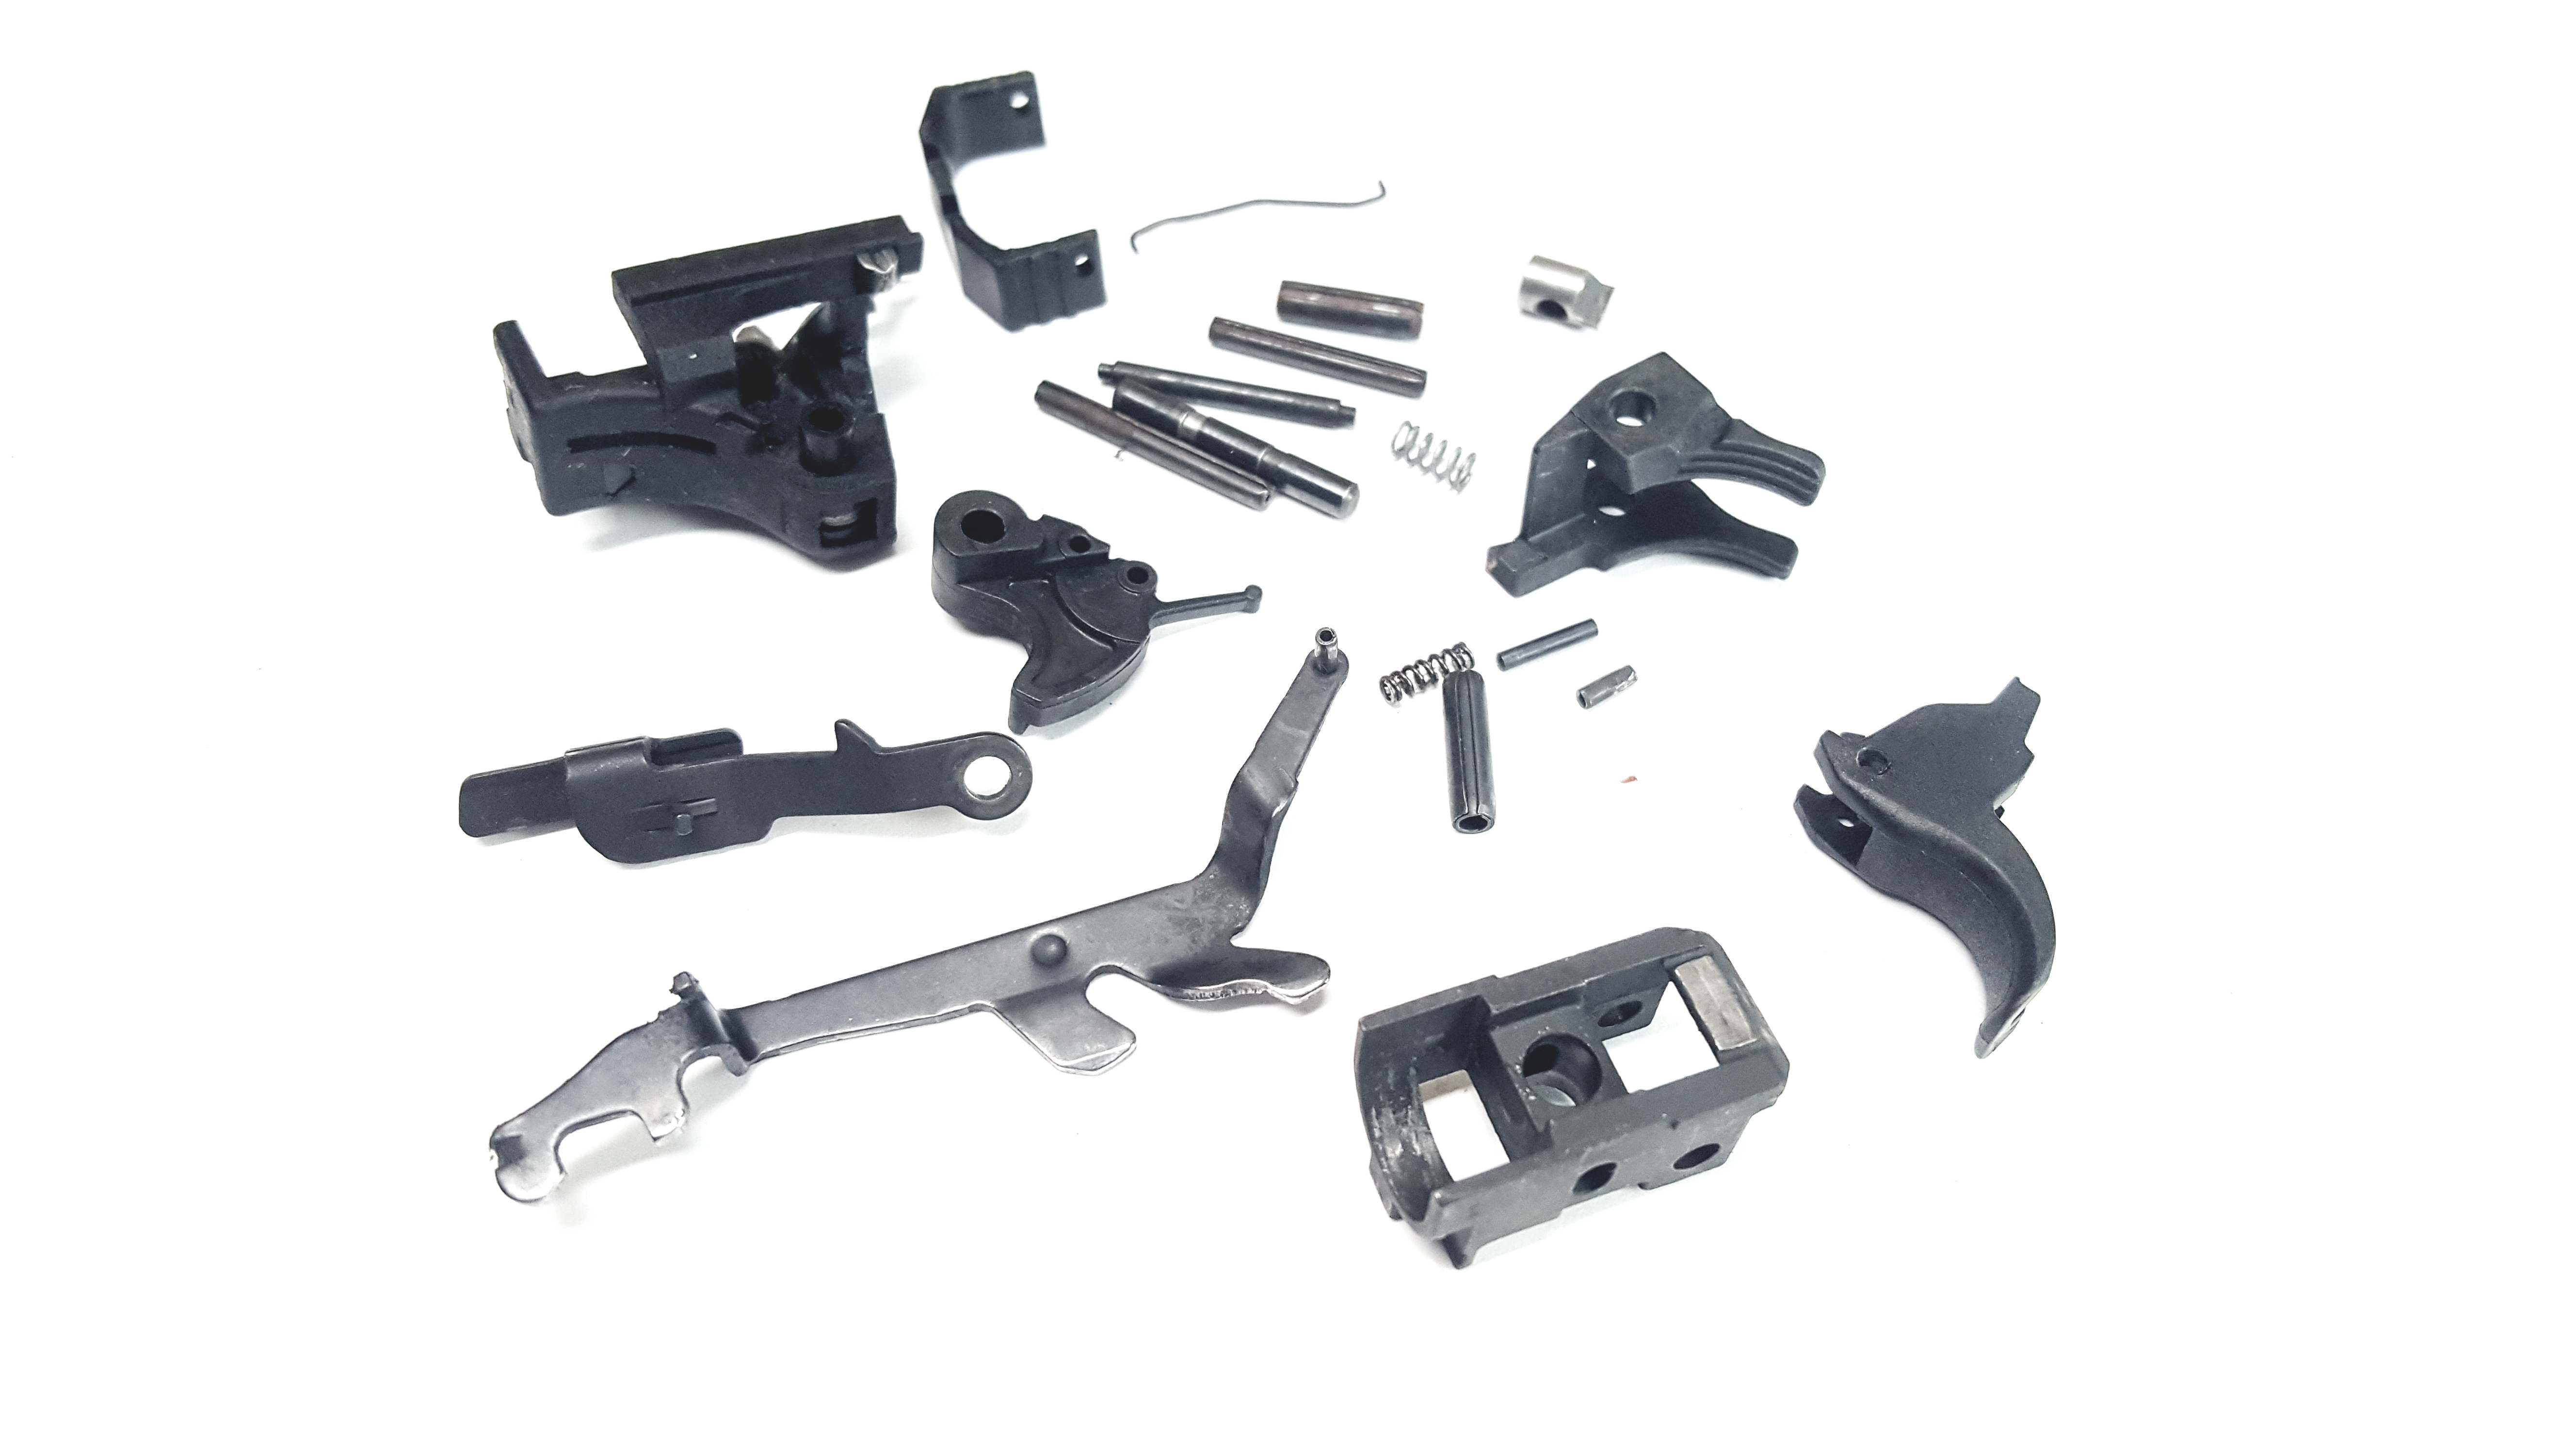 Walther Arms P99 Trigger and Small Parts Kit - 40 S&W - No FFL Required